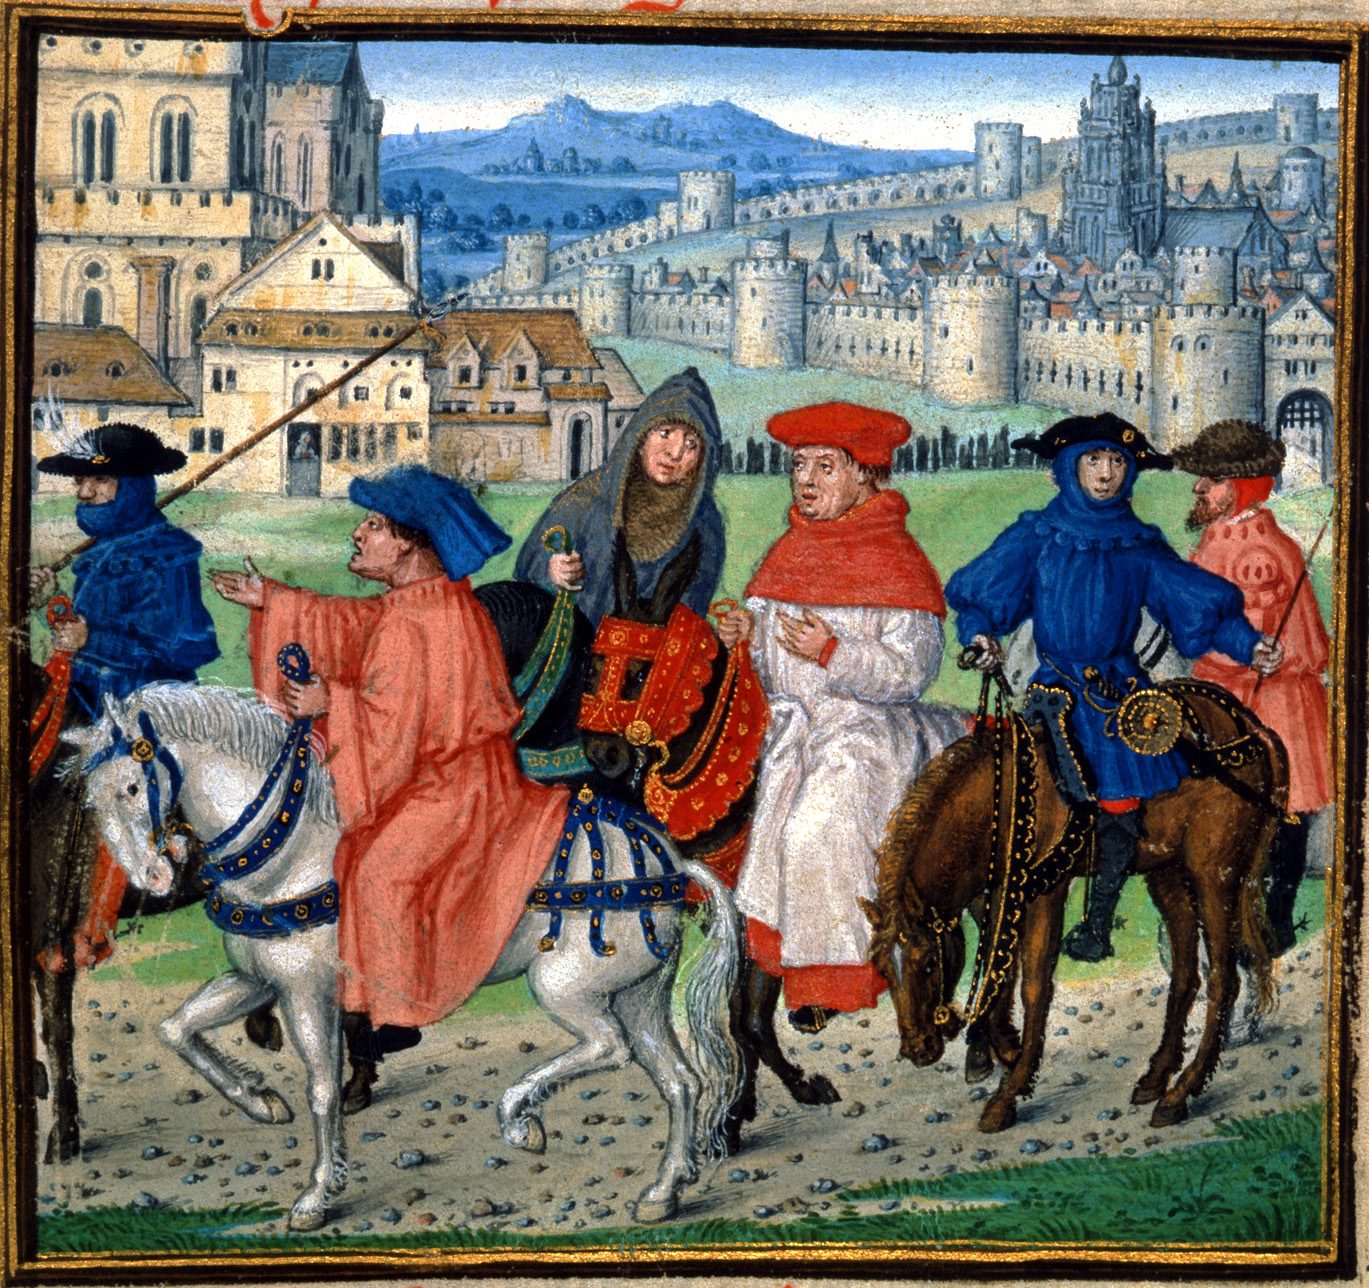 the canterbury tales essay setting Summary review on canterbury tales on studybaycom - the general prologue starts the canterbury tales, online marketplace for students.